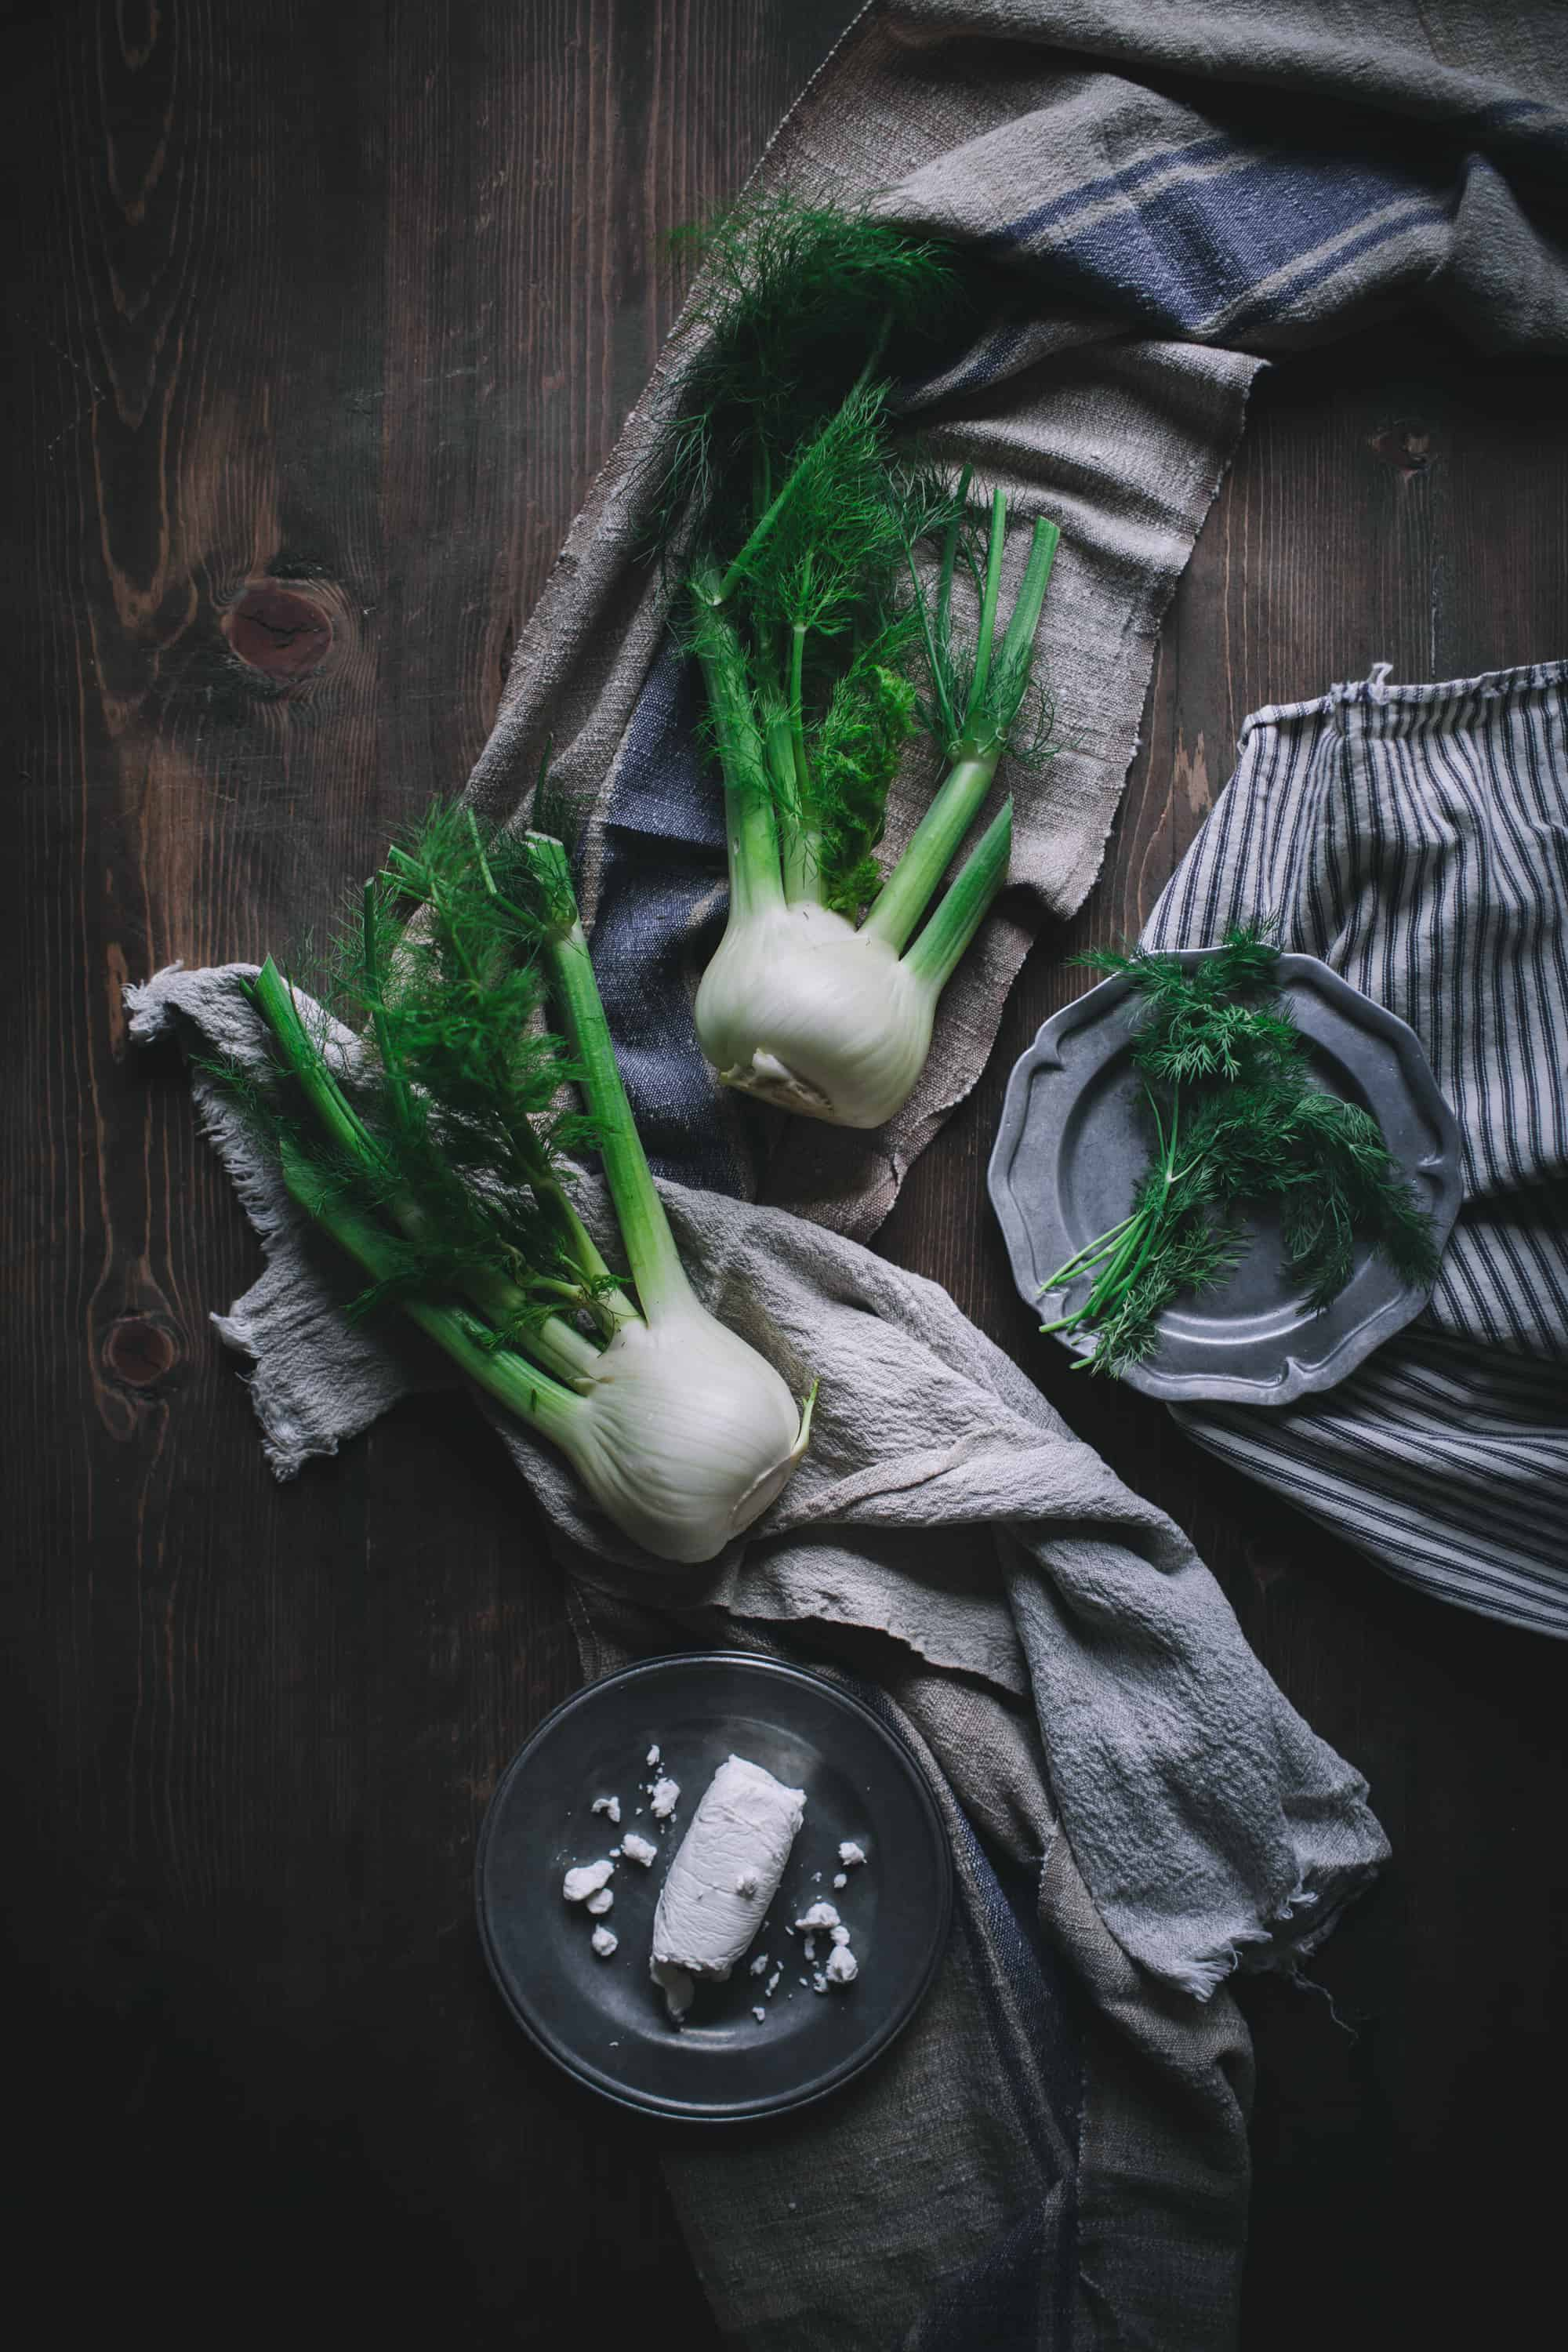 Caramelized Fennel Bulbs With Goat's Cheese by Eva Kosmas Flores